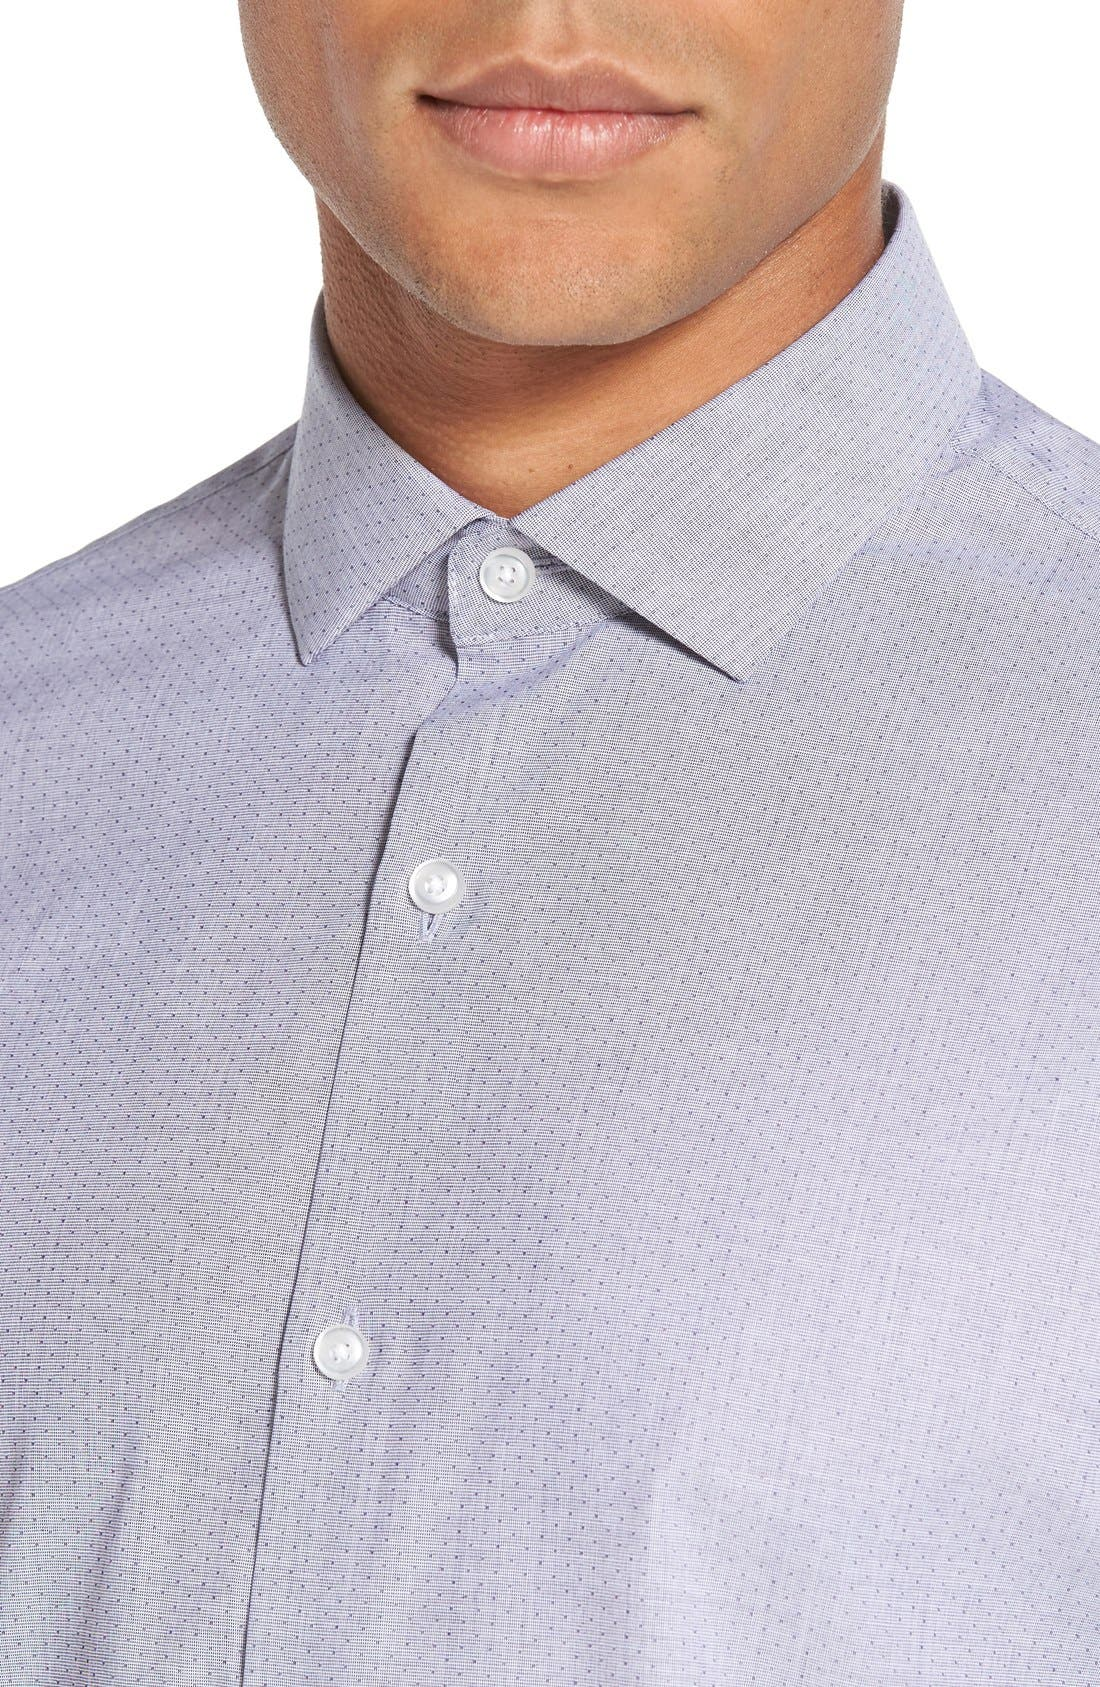 Trim Fit End on End Dobby Sport Shirt,                             Alternate thumbnail 4, color,                             Blue Xenon Eoe Dobby